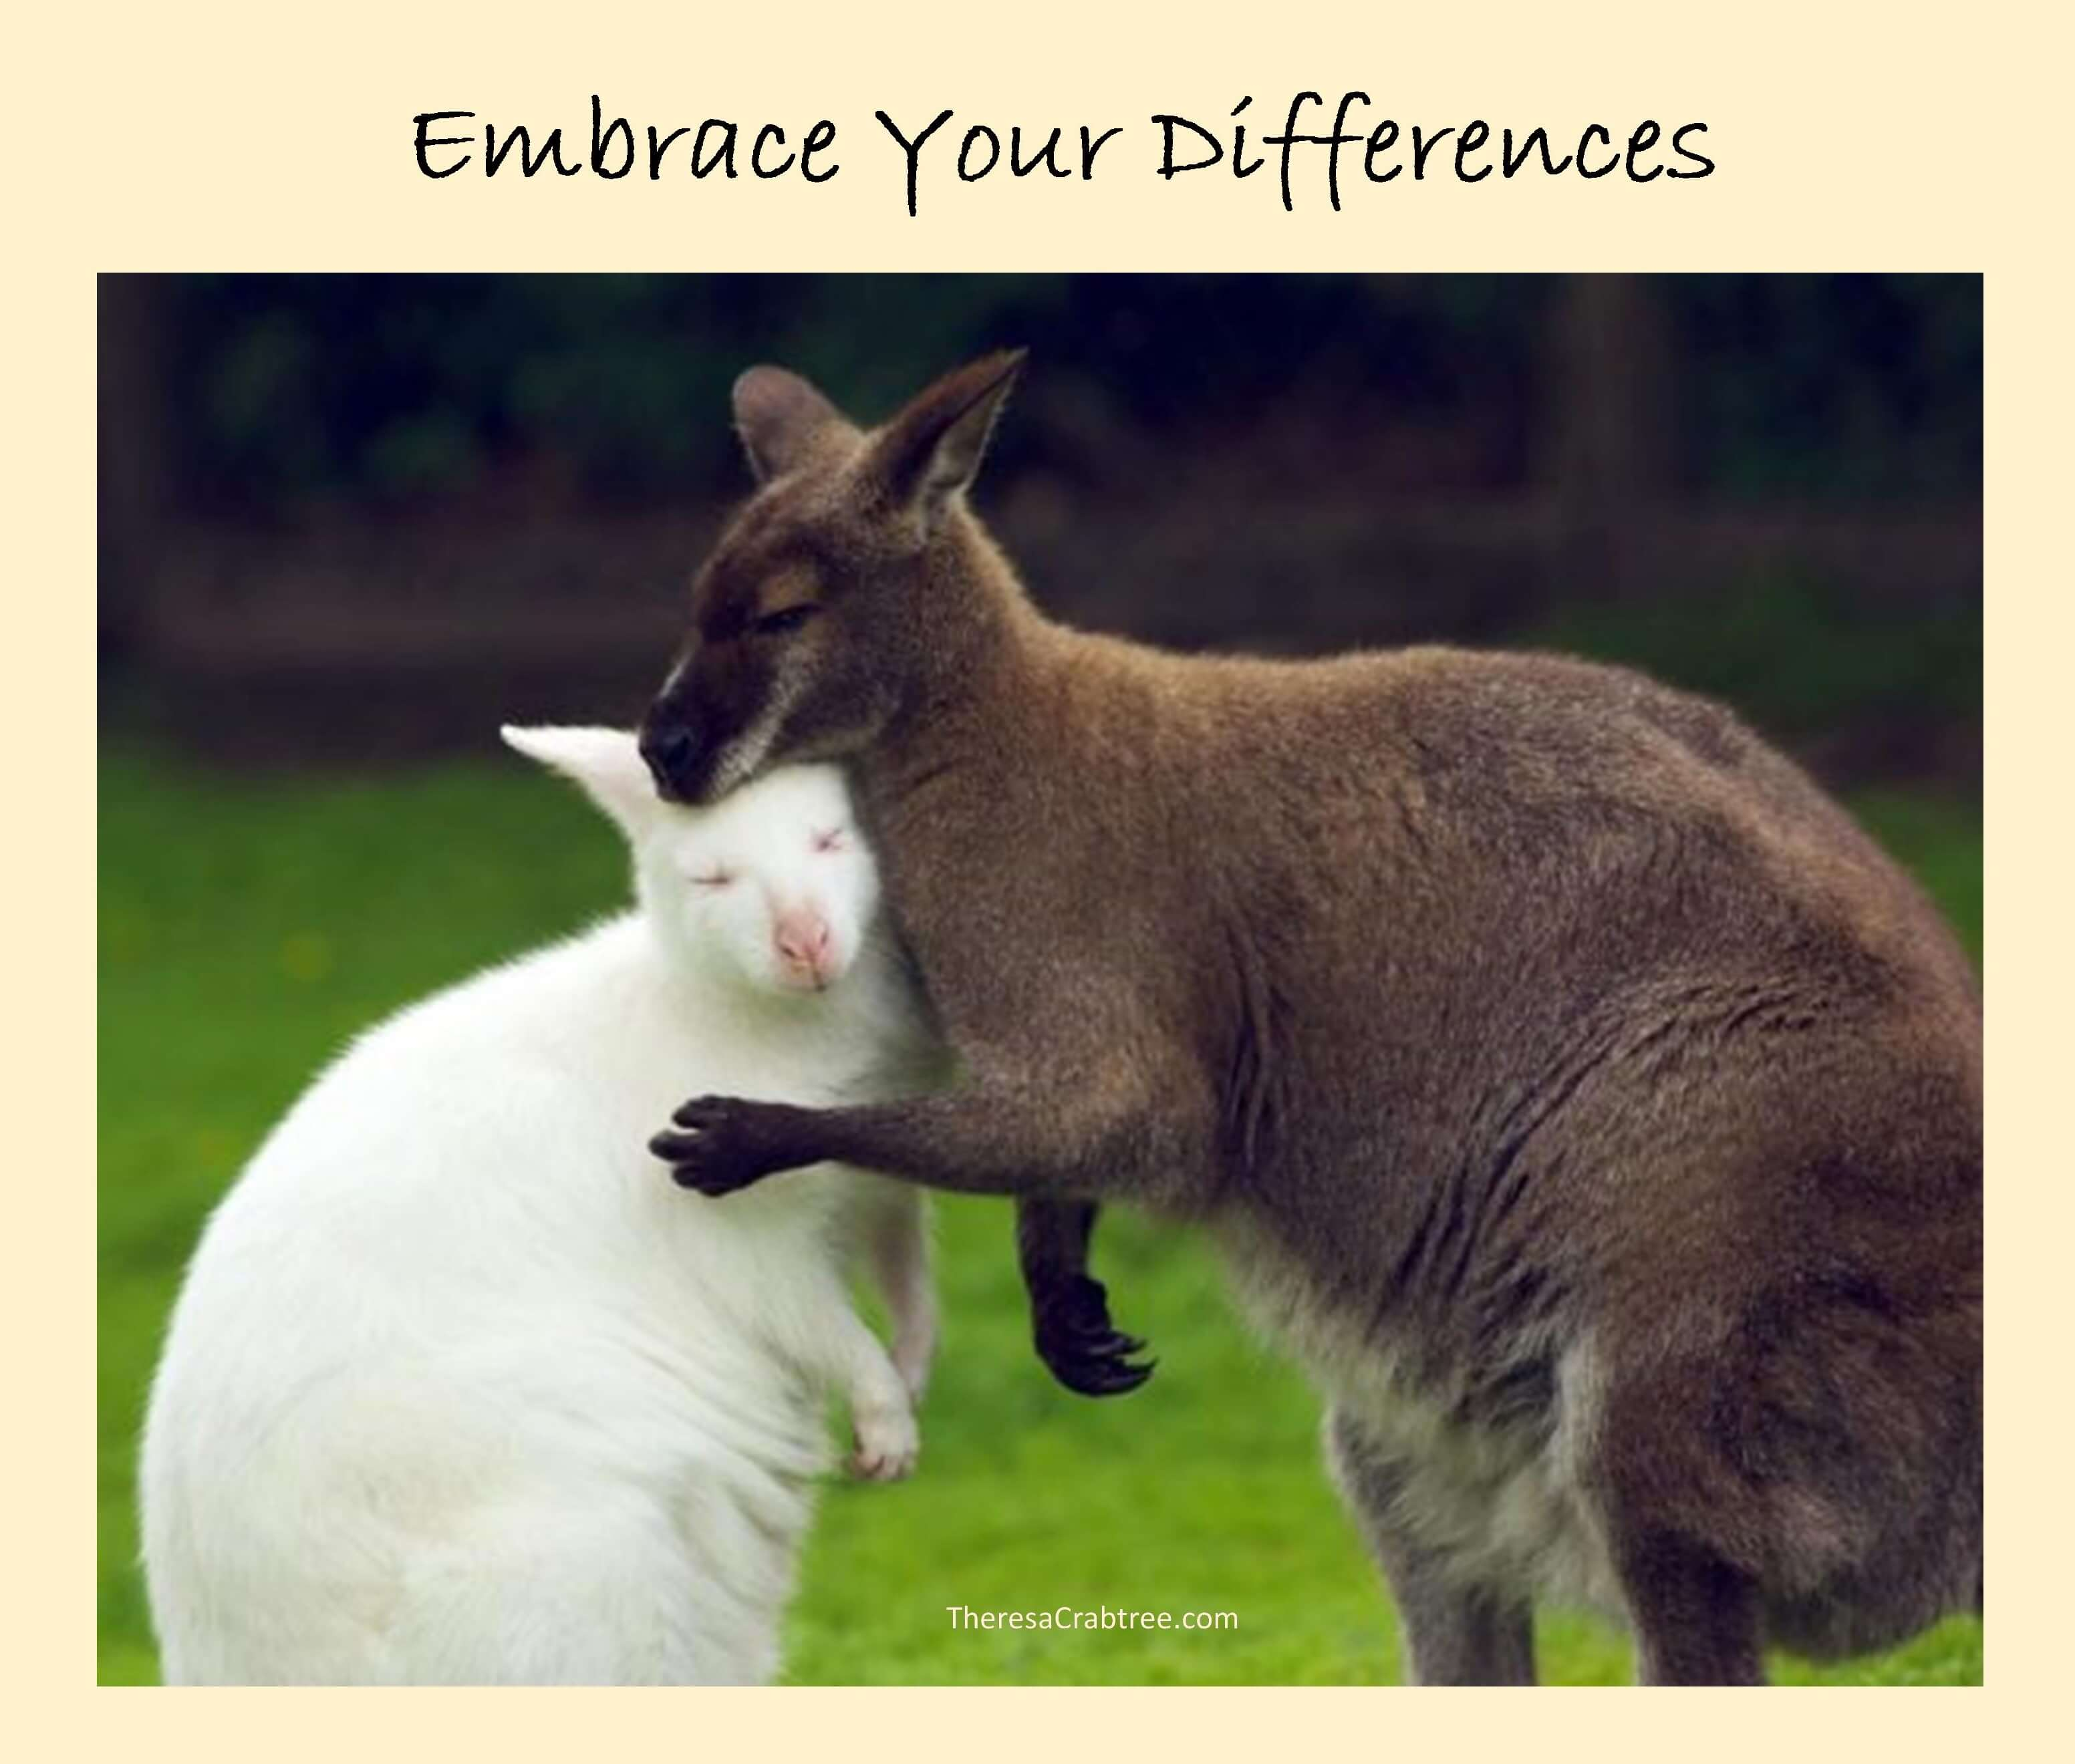 Embrace Your Differences